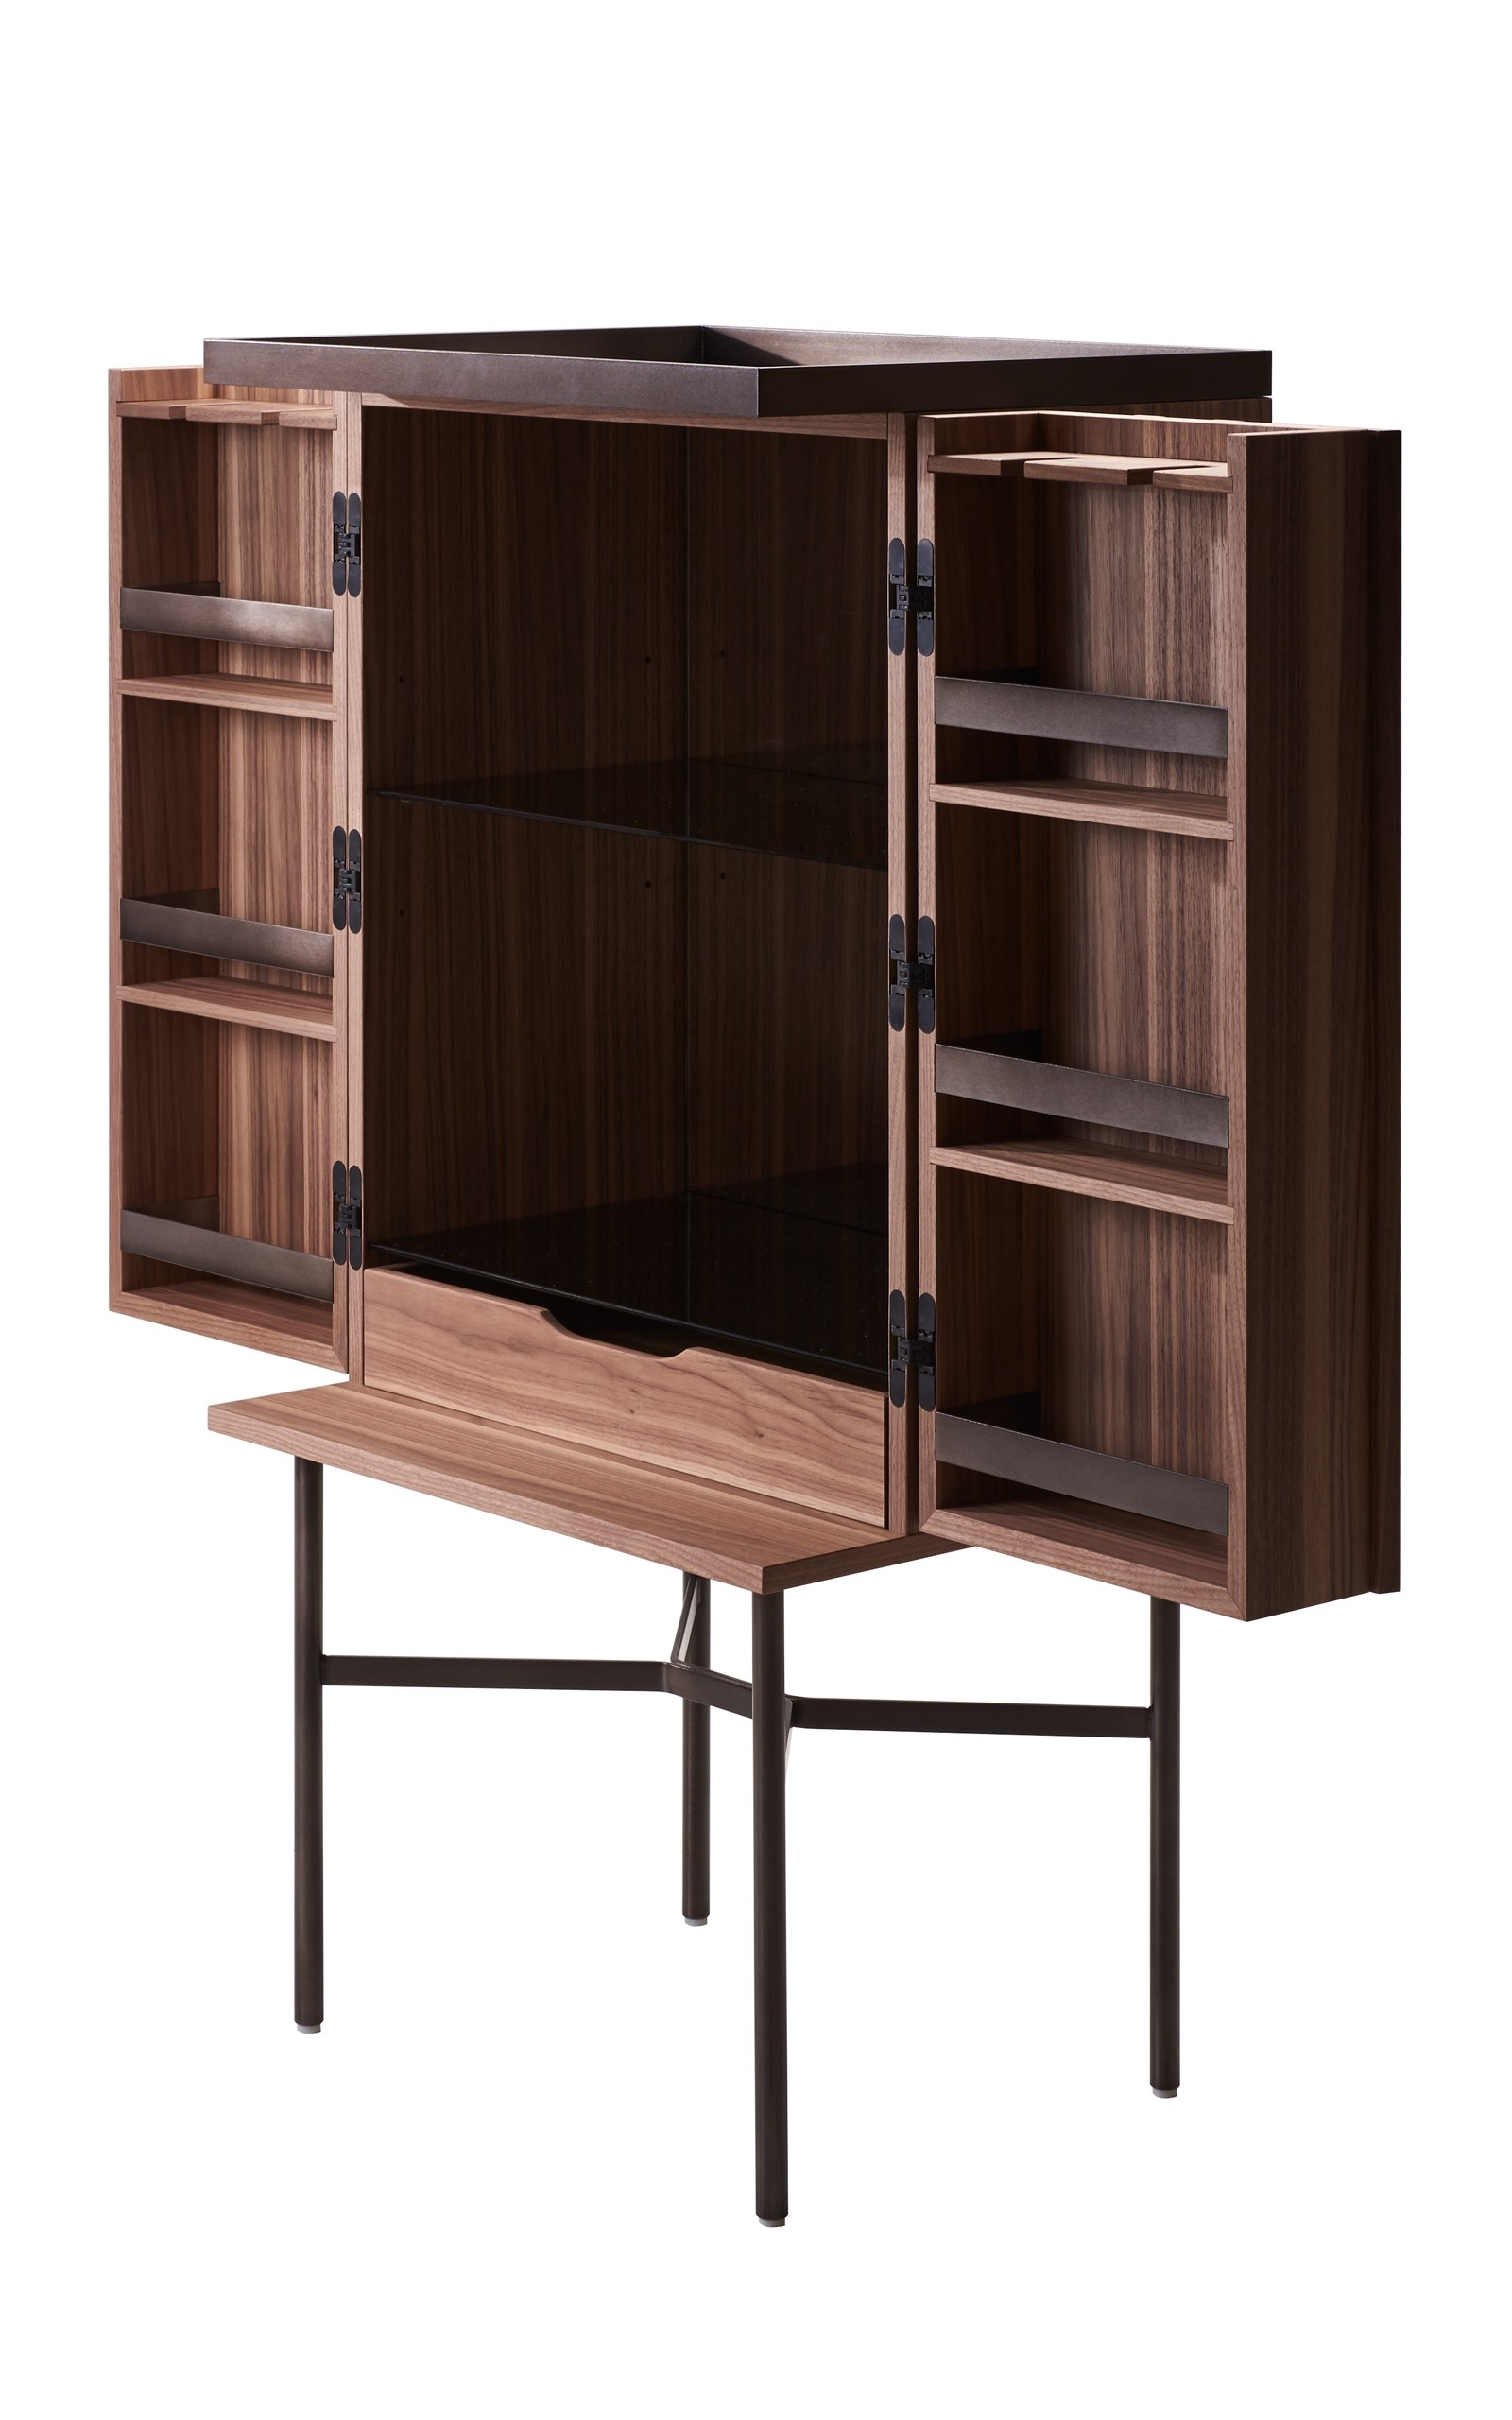 Barschrank Design Harri Bar Cabinet S